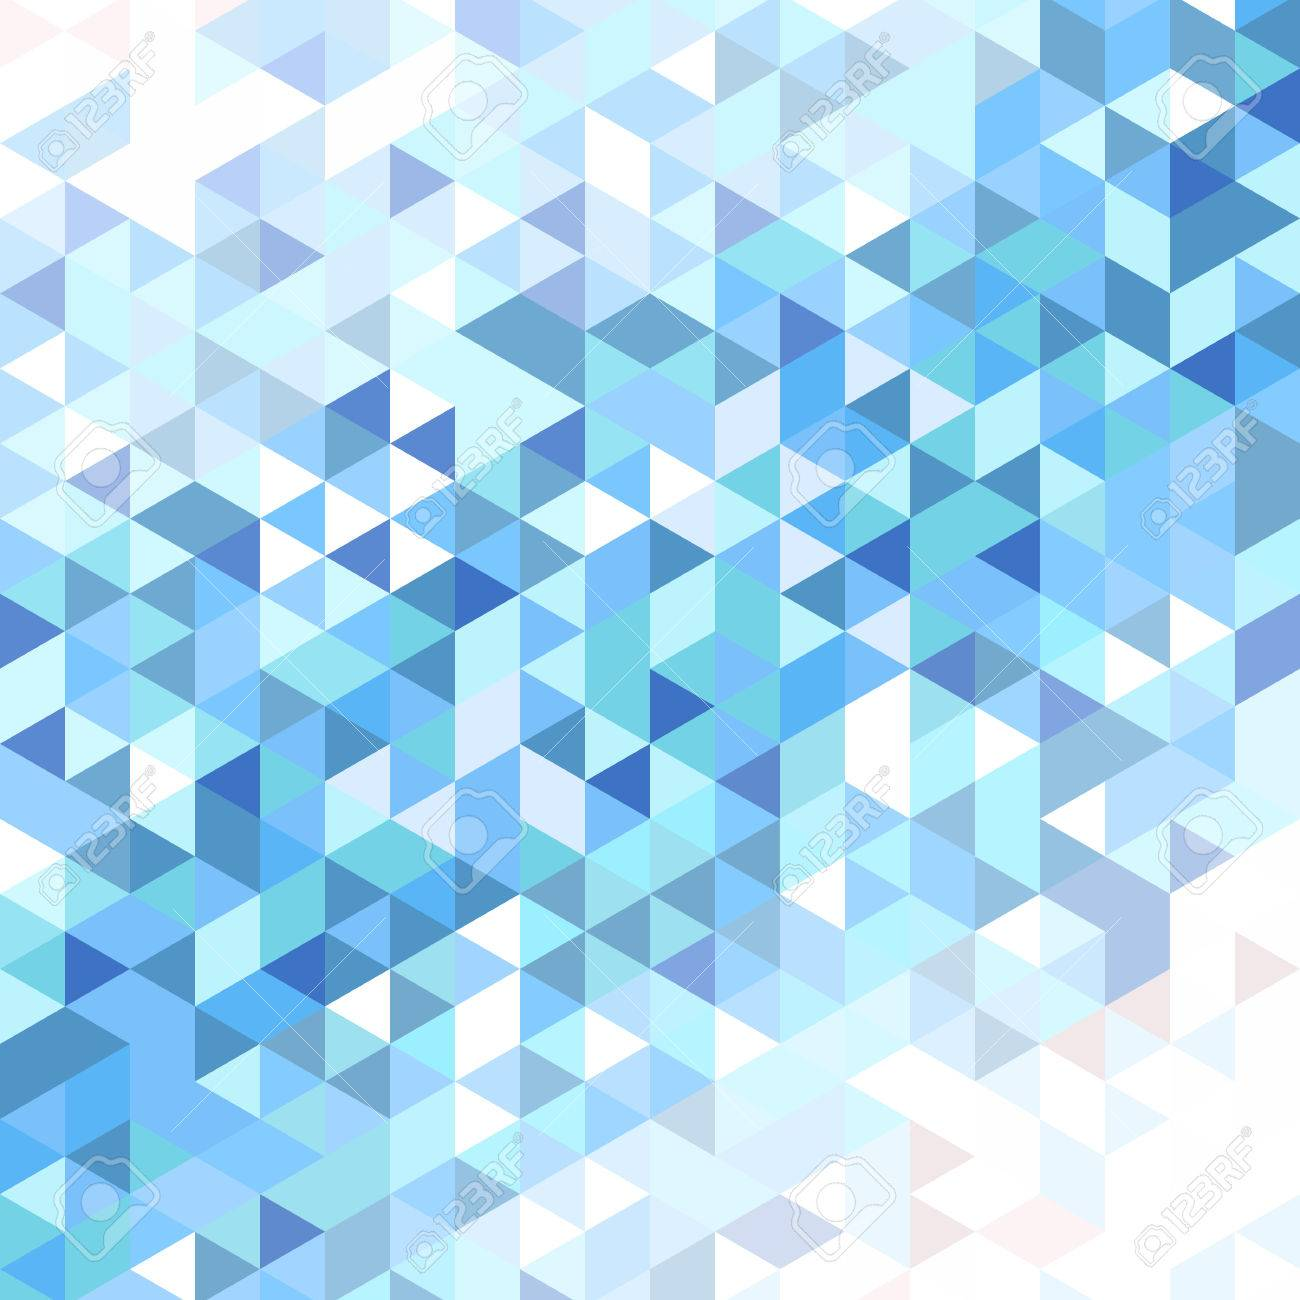 vector background of different color triangles with a gradient